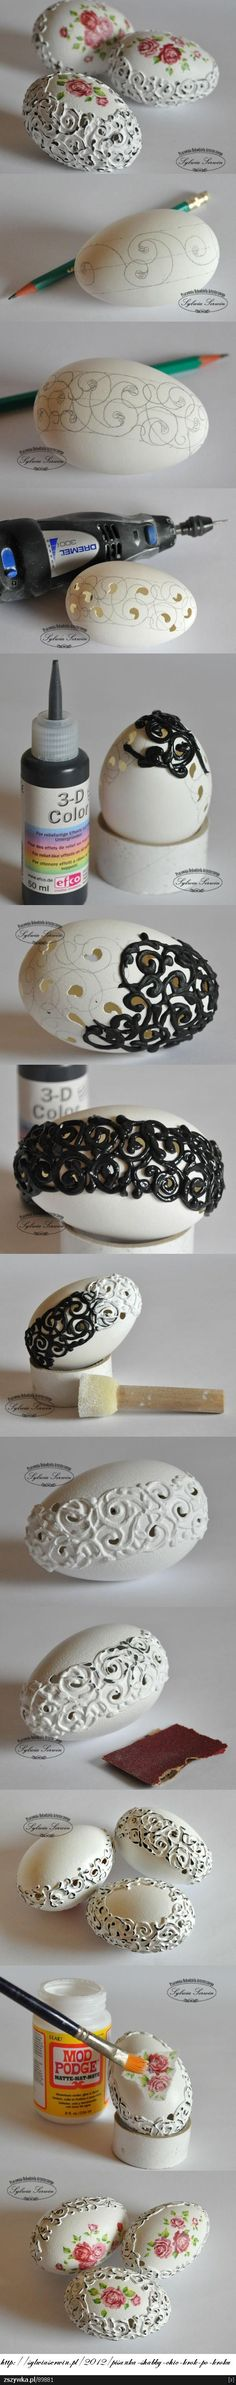 Beautifully decorated eggs